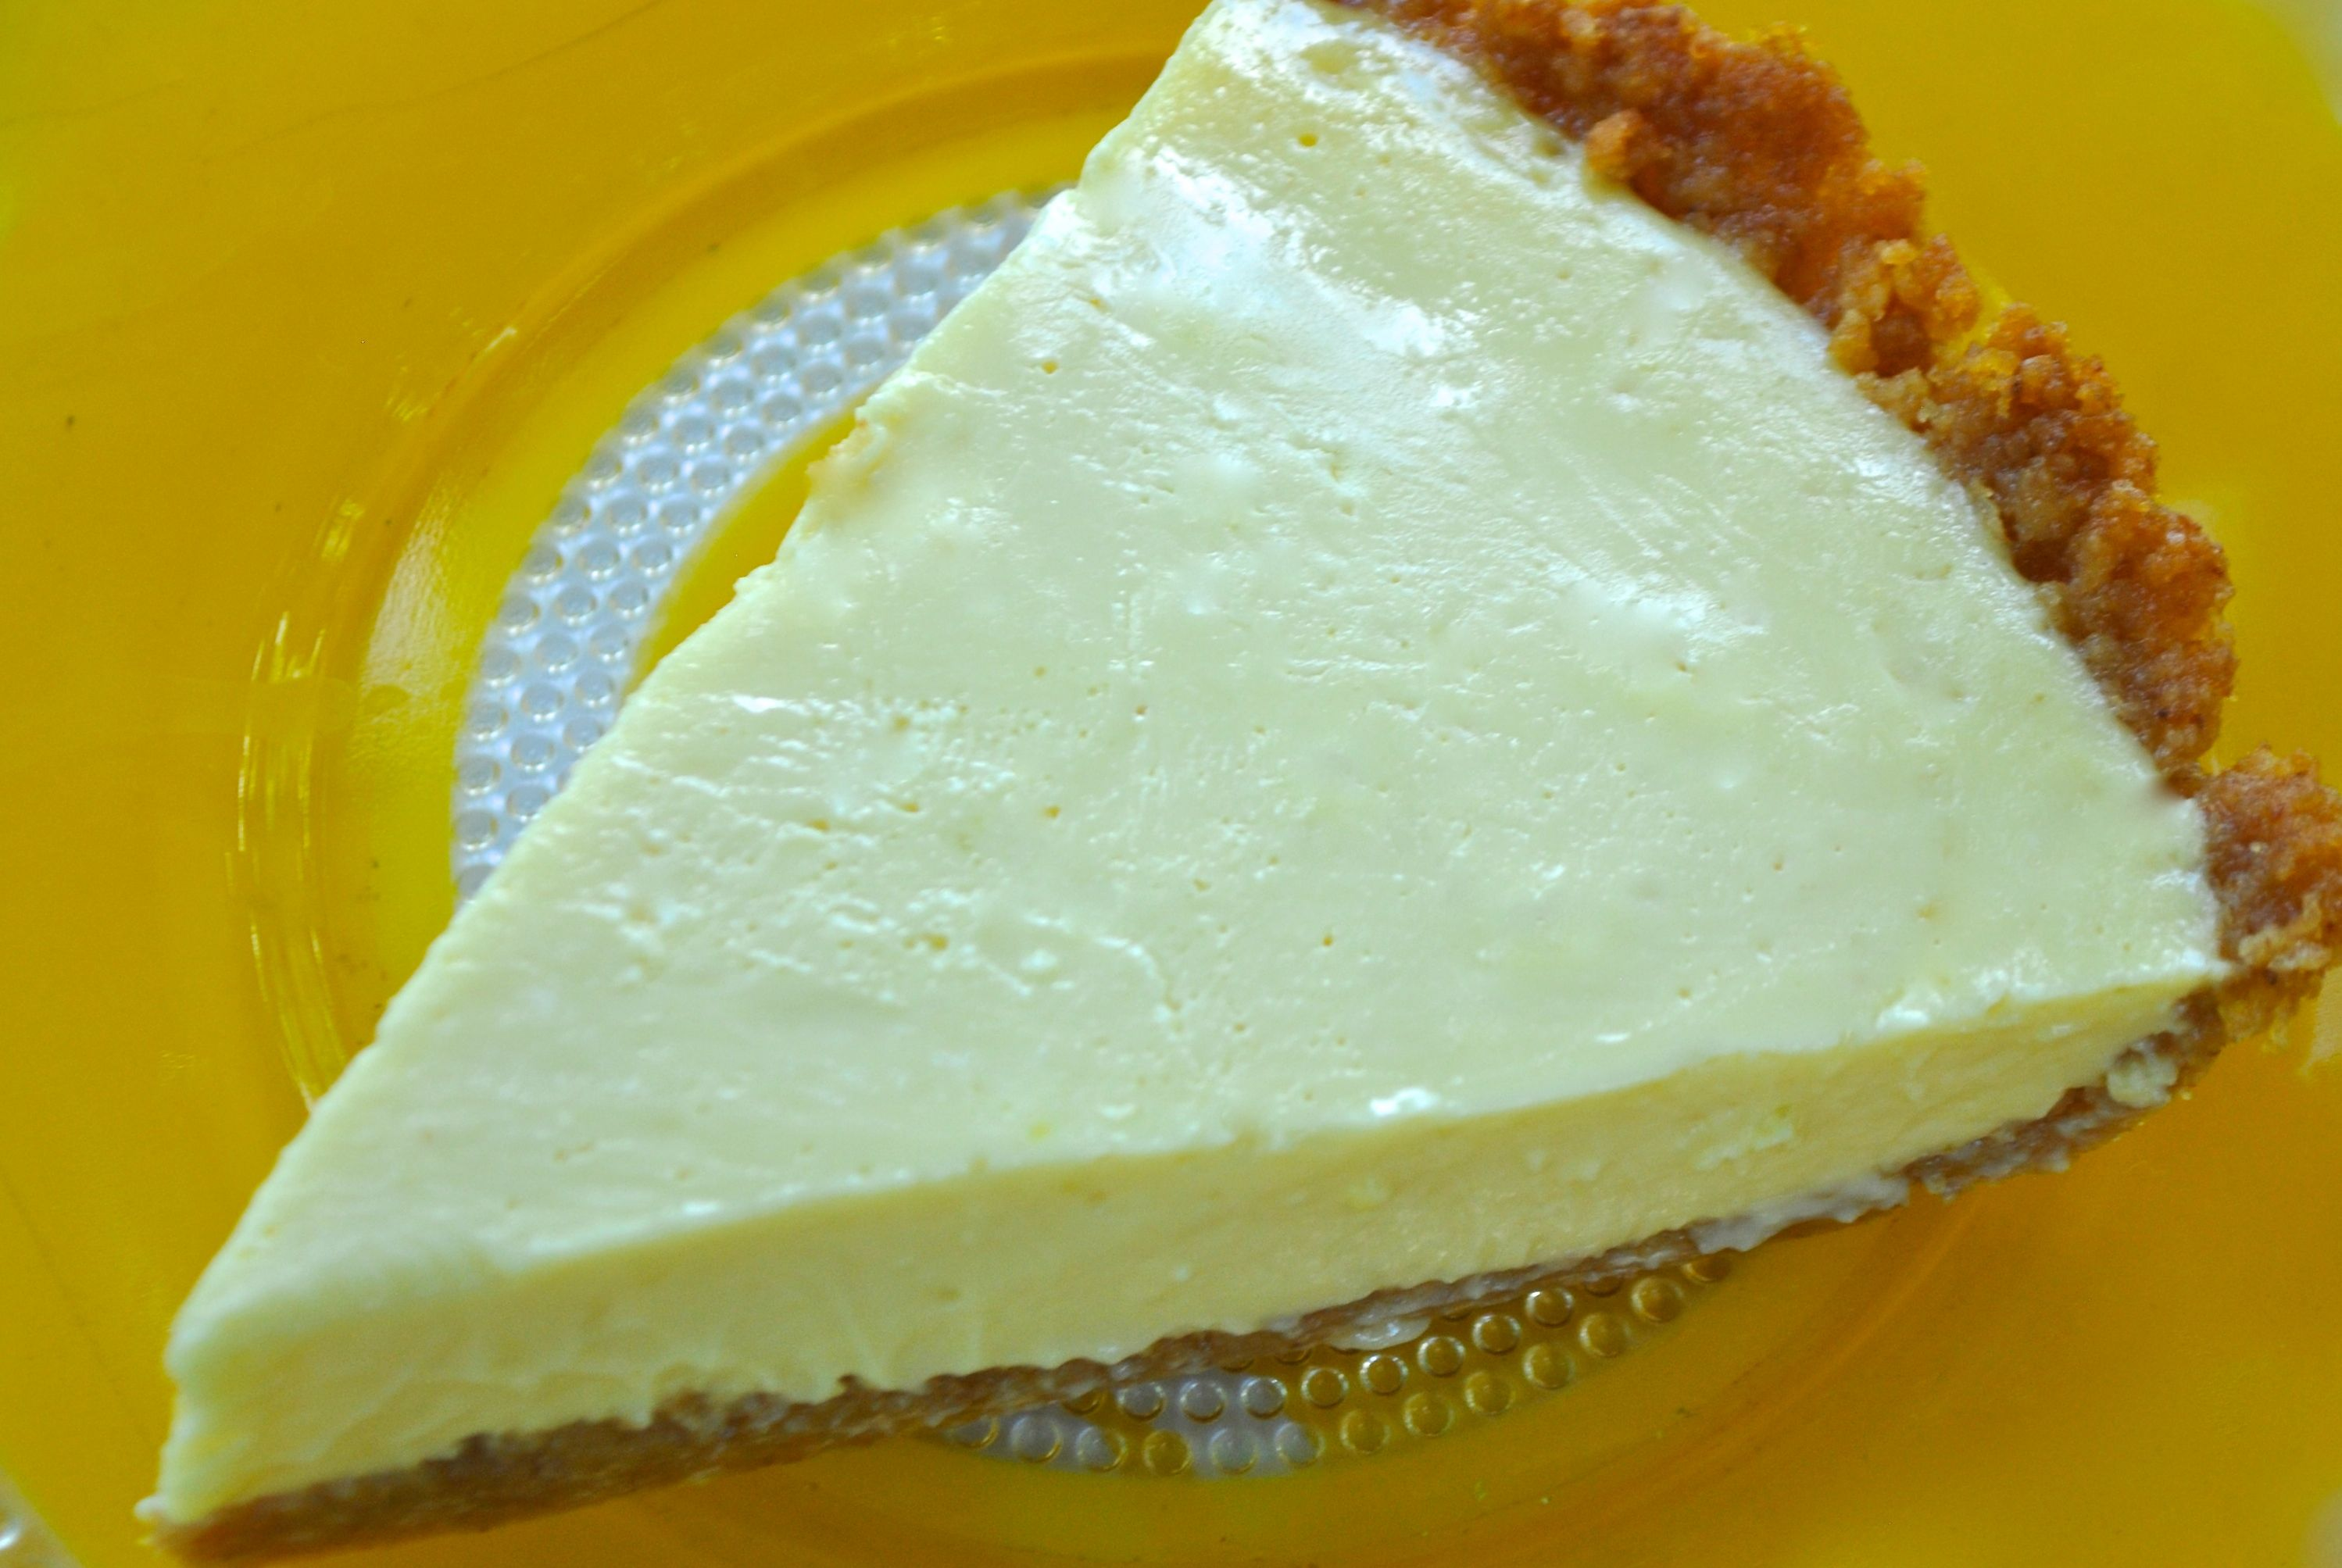 Key Lime Pie | key lime pie with meringue topping recipe ...